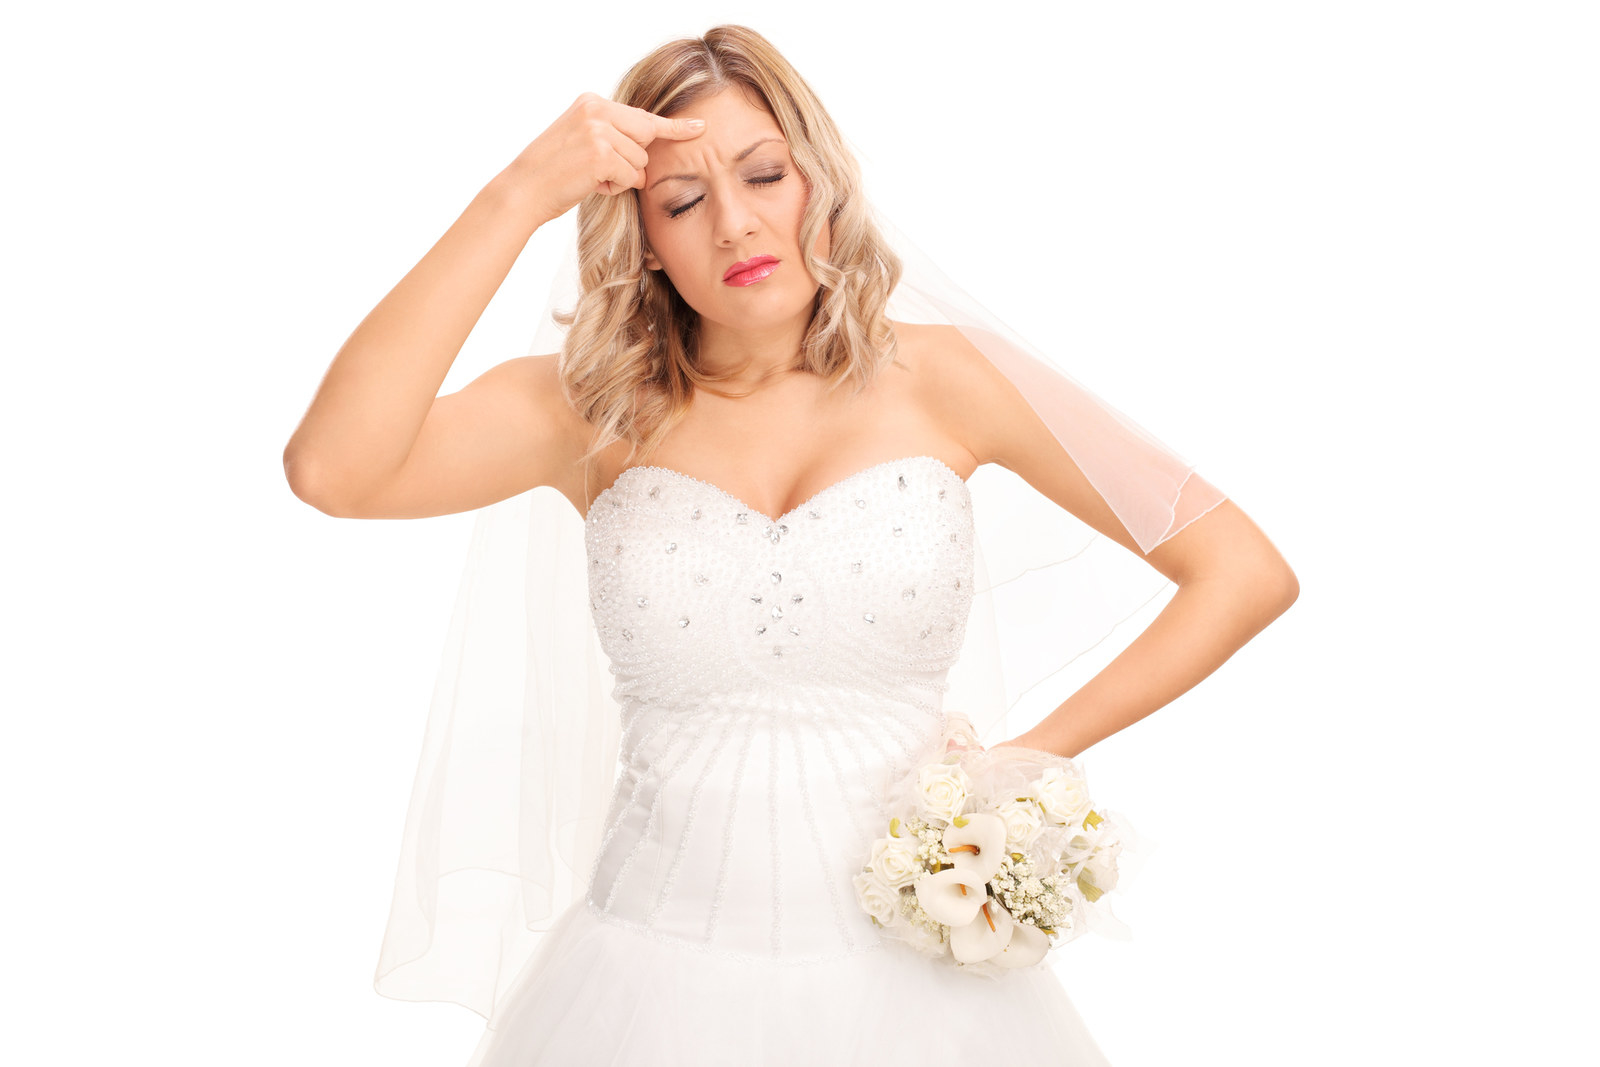 unhappy bride Unhappy brides take aim at wedding photographer posted: updated another bride  he claims the unhappy customers will get a refund.